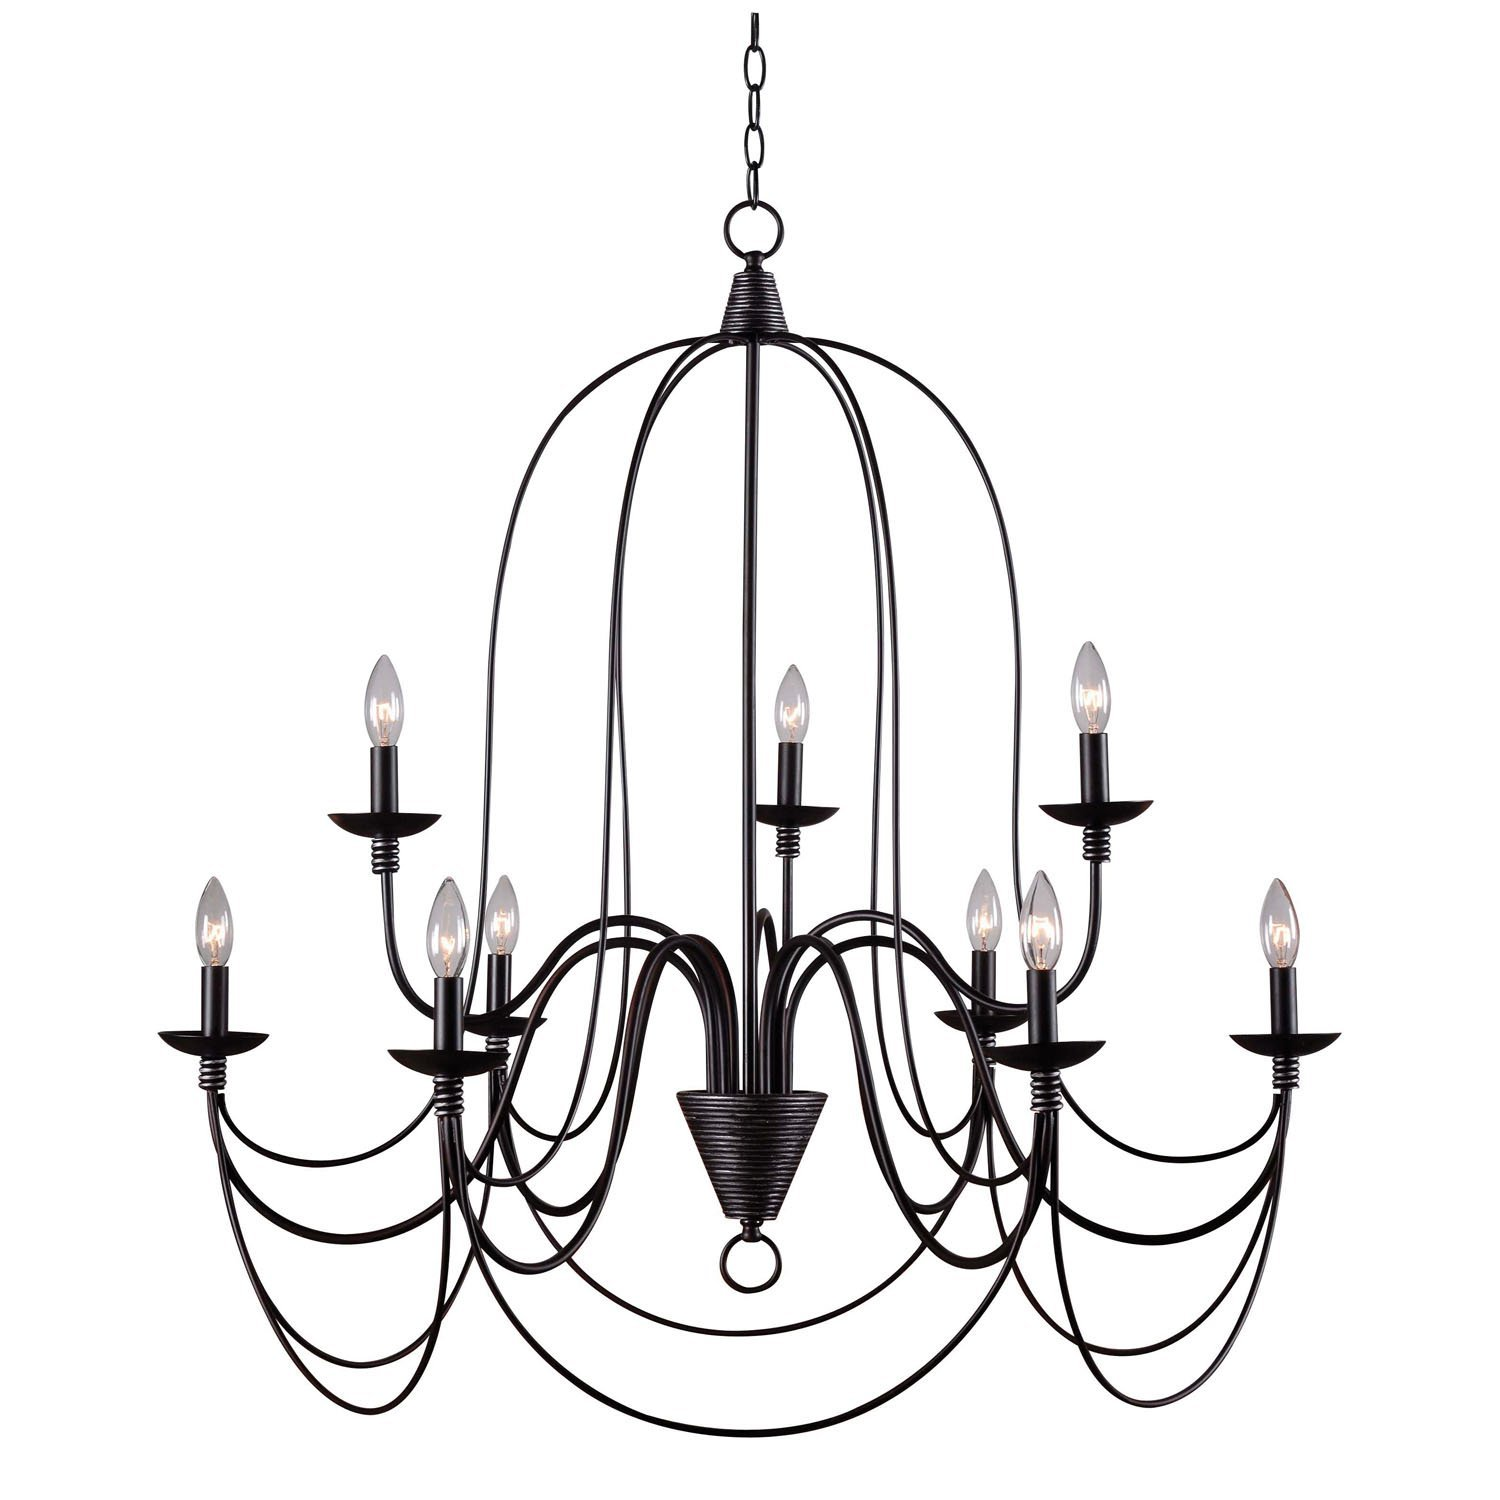 Fantastic Gothic Chandelier Inspirations | Incredible Mexican Wrought Iron Light Fixtures